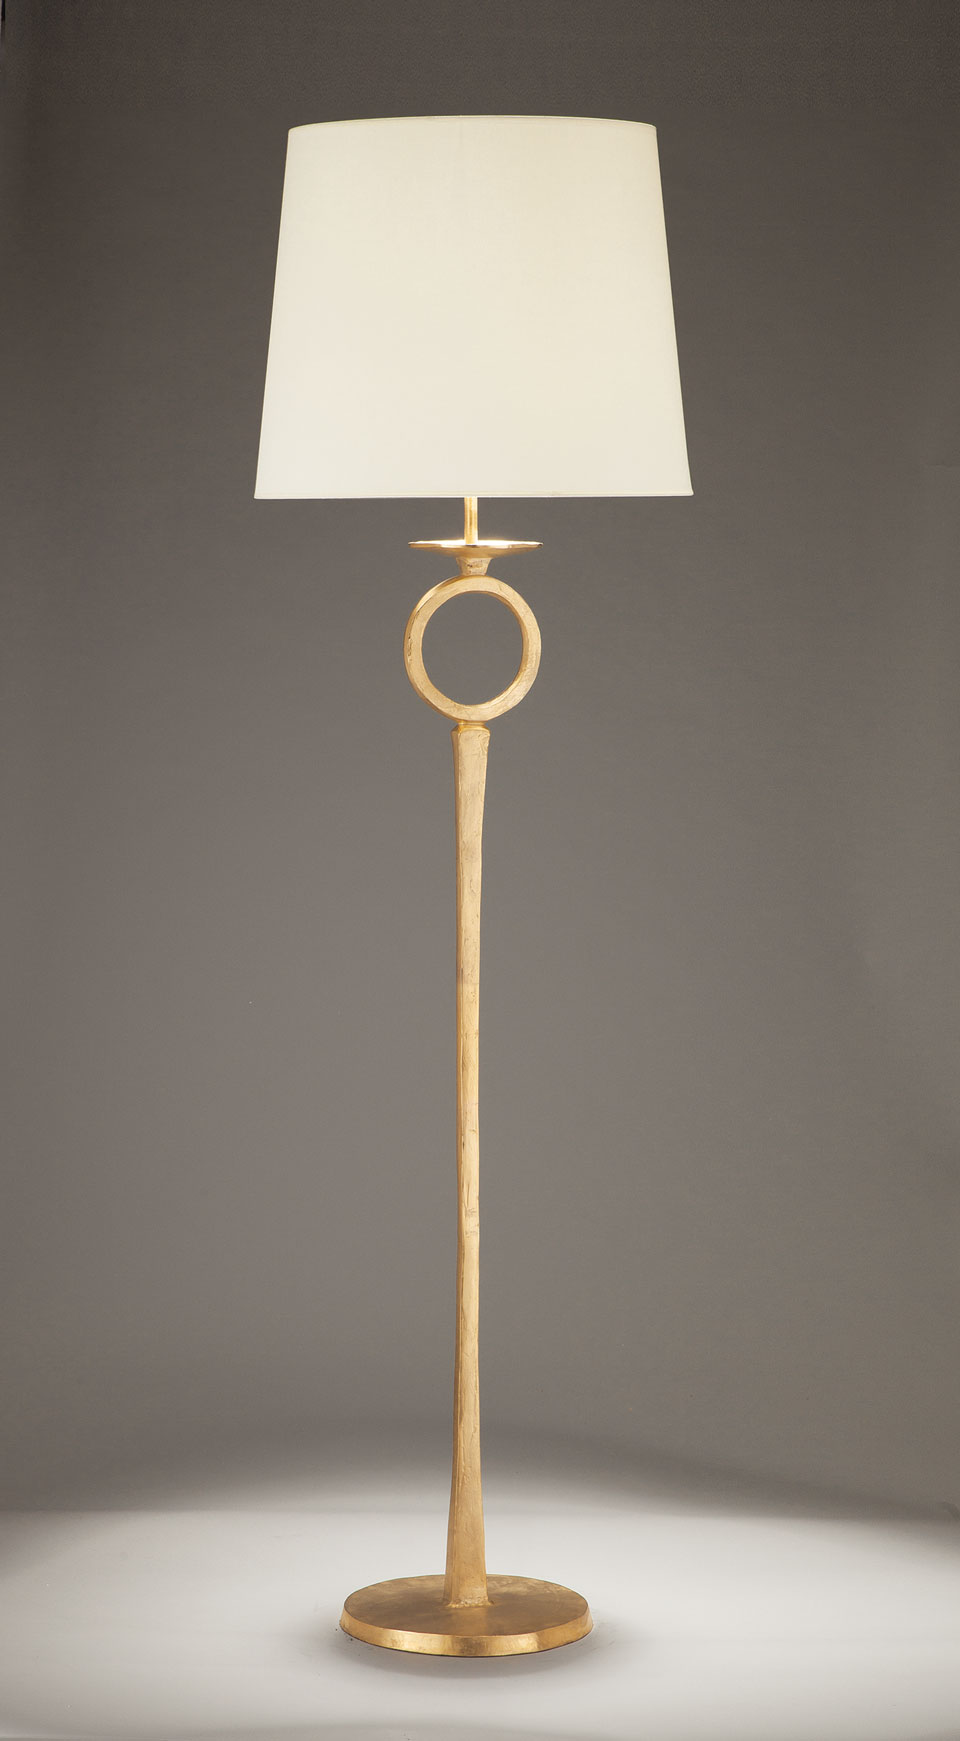 Image of: Gilded Solid Bronze Floor Lamp Diego Objet Insolite Hight Qualite Lighting Made In France Ref 17090392